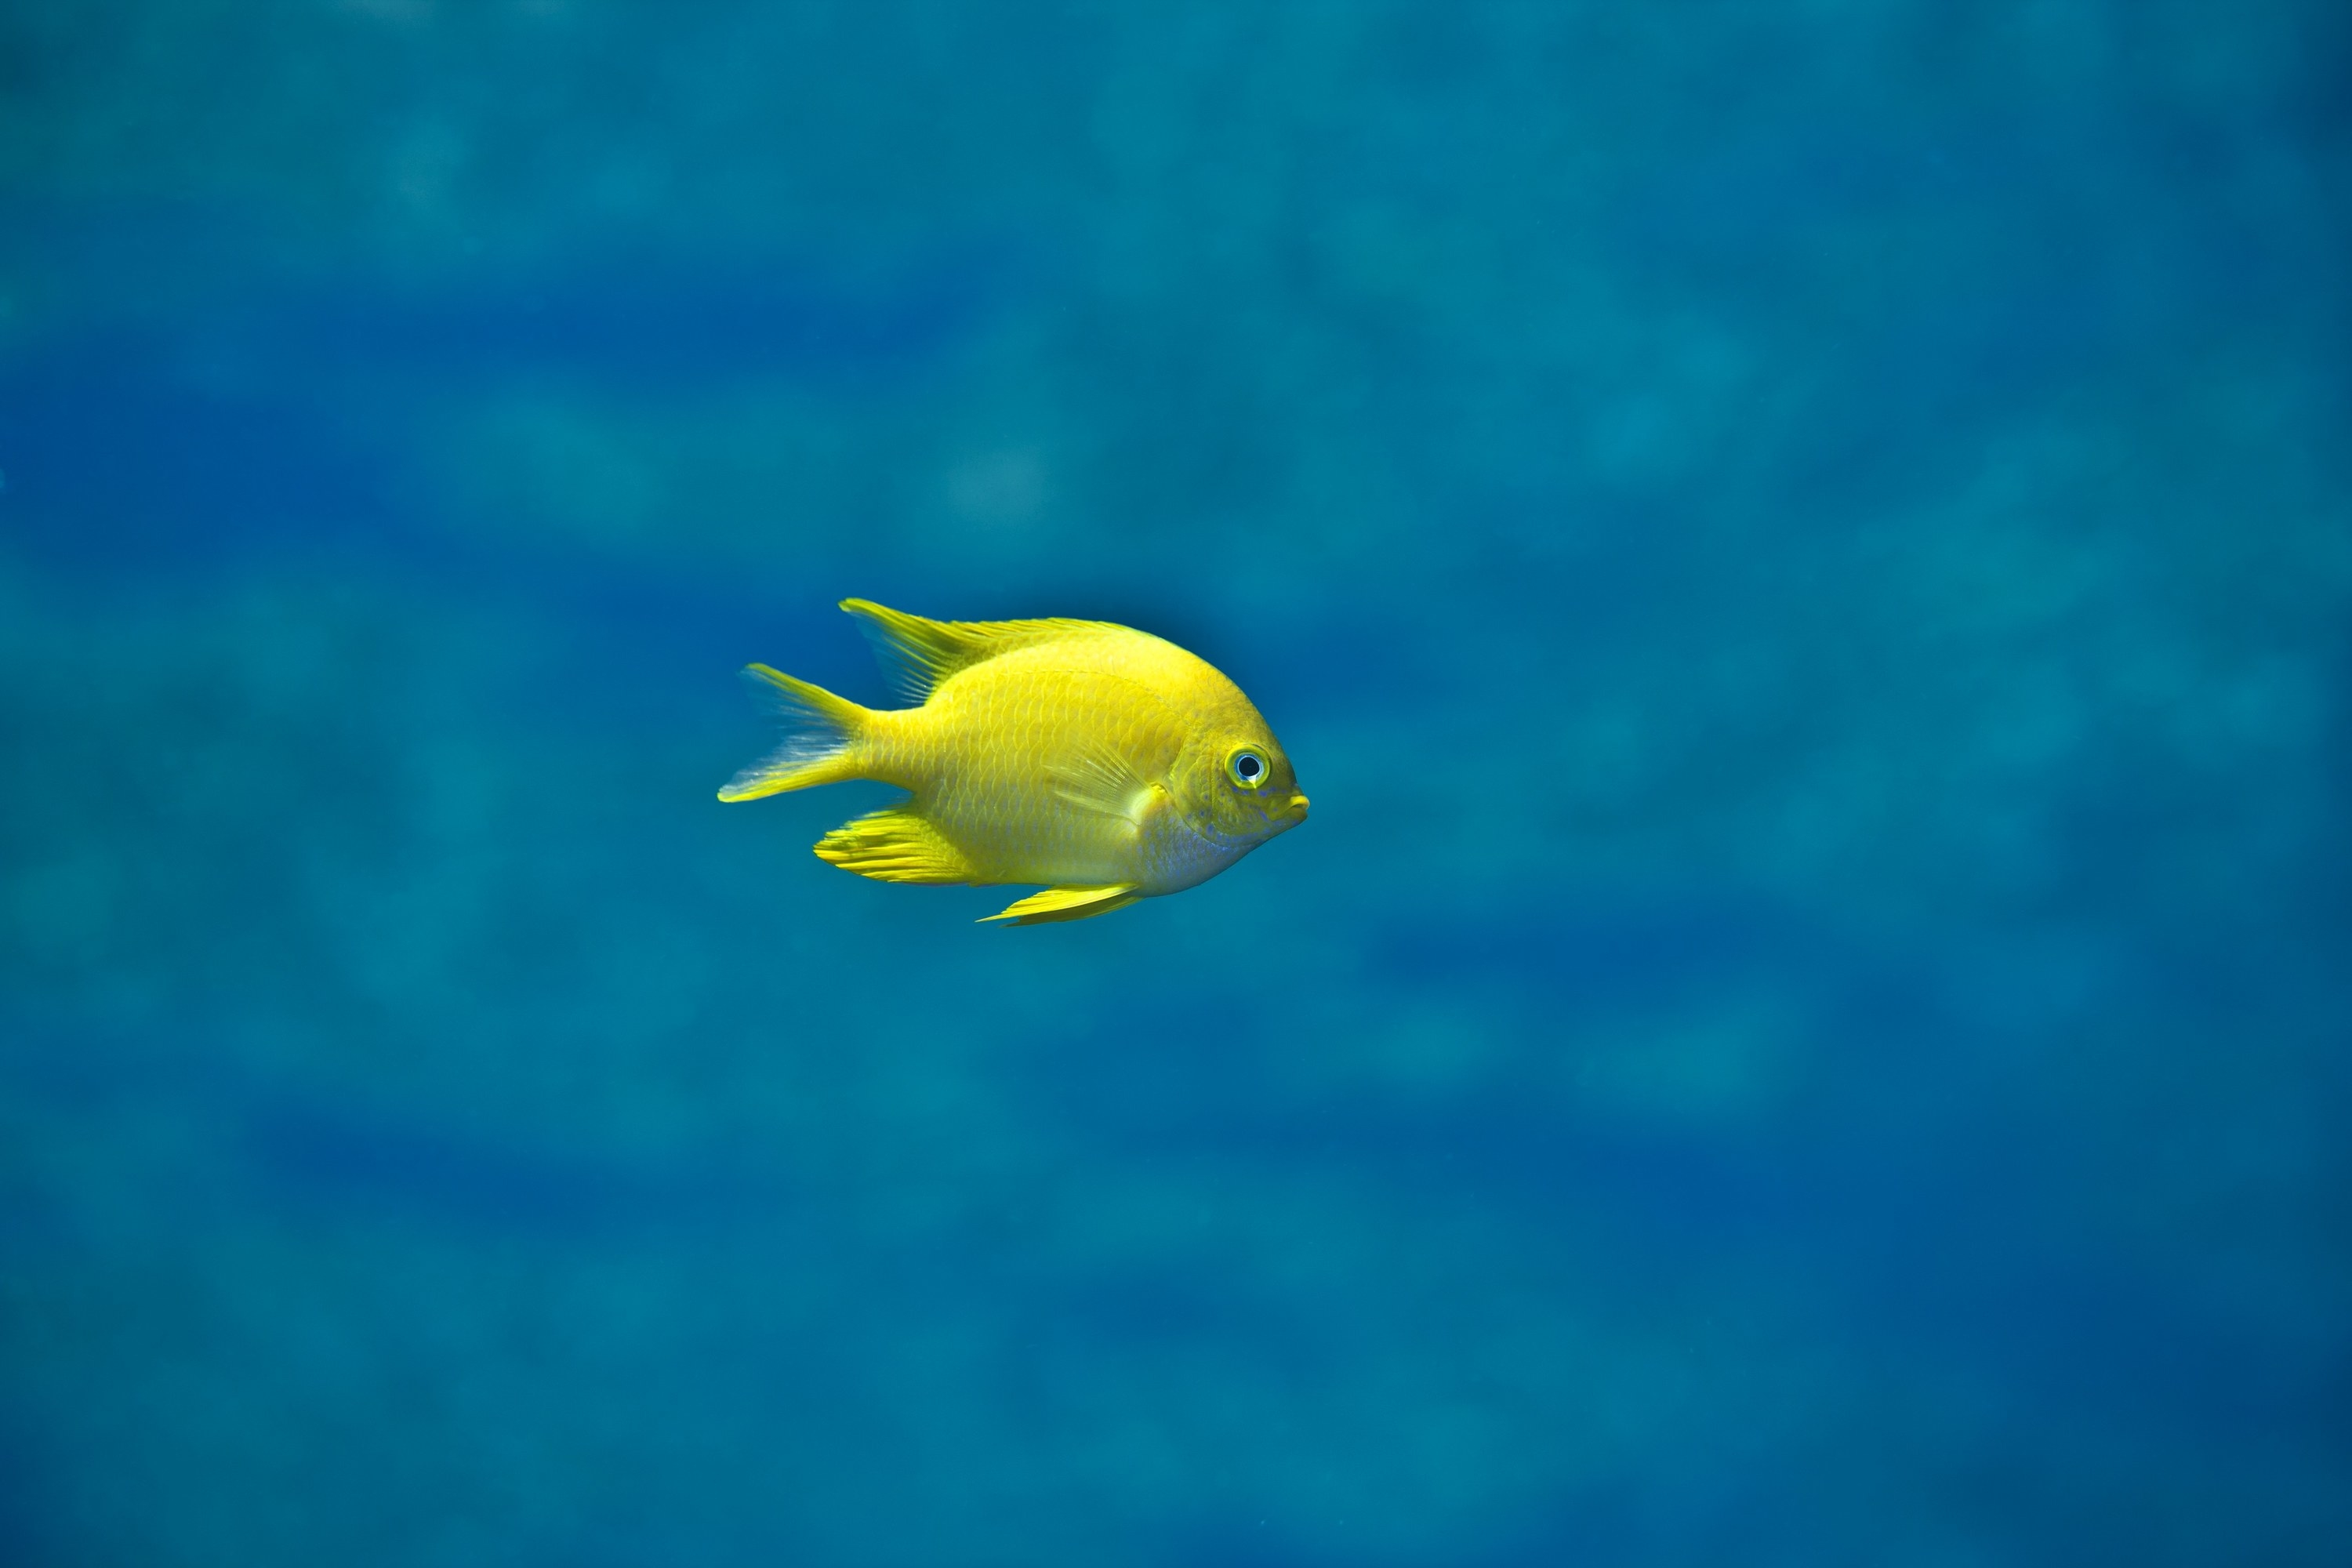 A small yellow fish